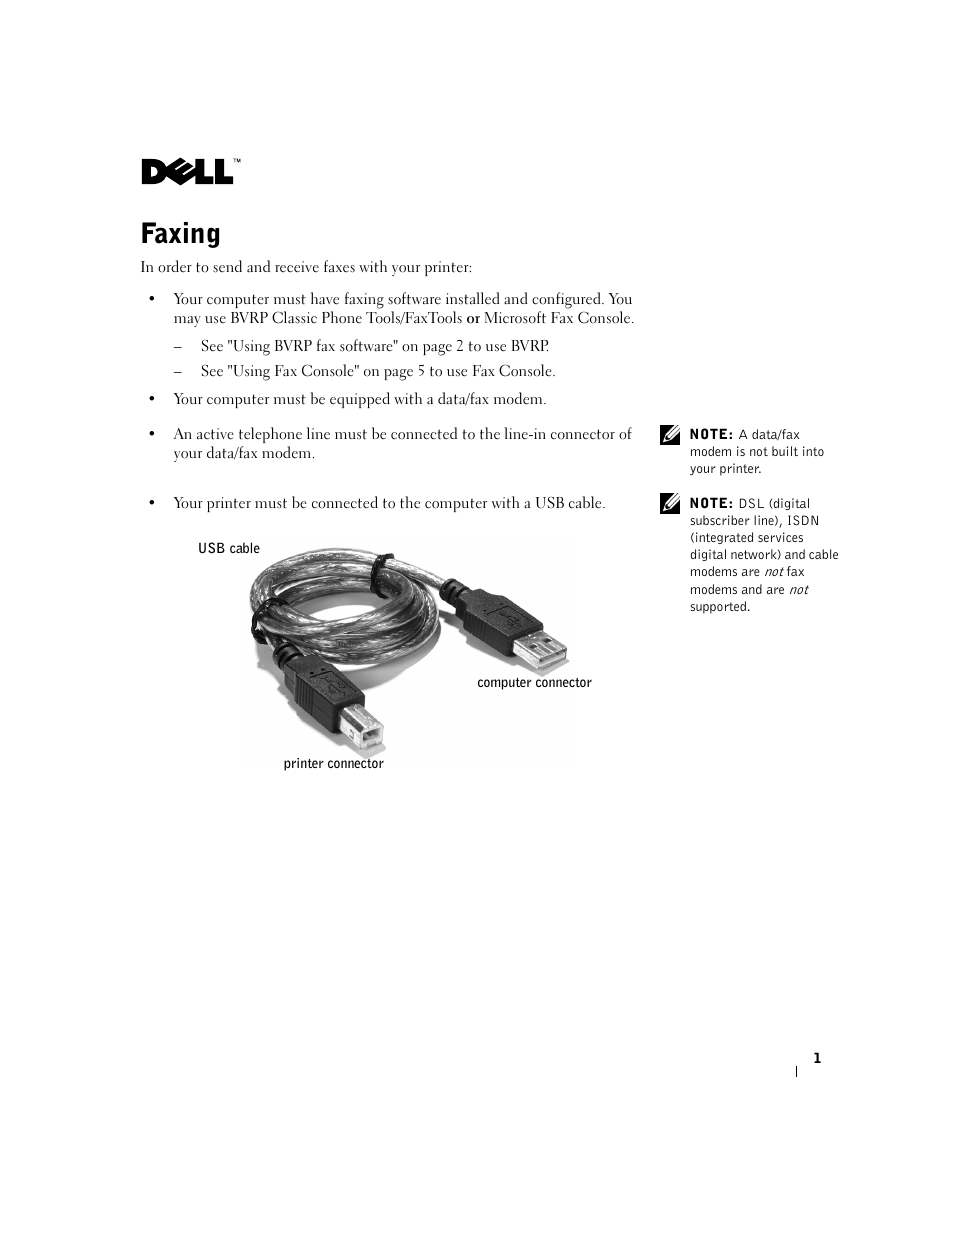 dell a940 all in one personal printer user manual 8 pages rh manualsdir com Dell A940 Printer Install Hardware Error 0502 Dell Printer